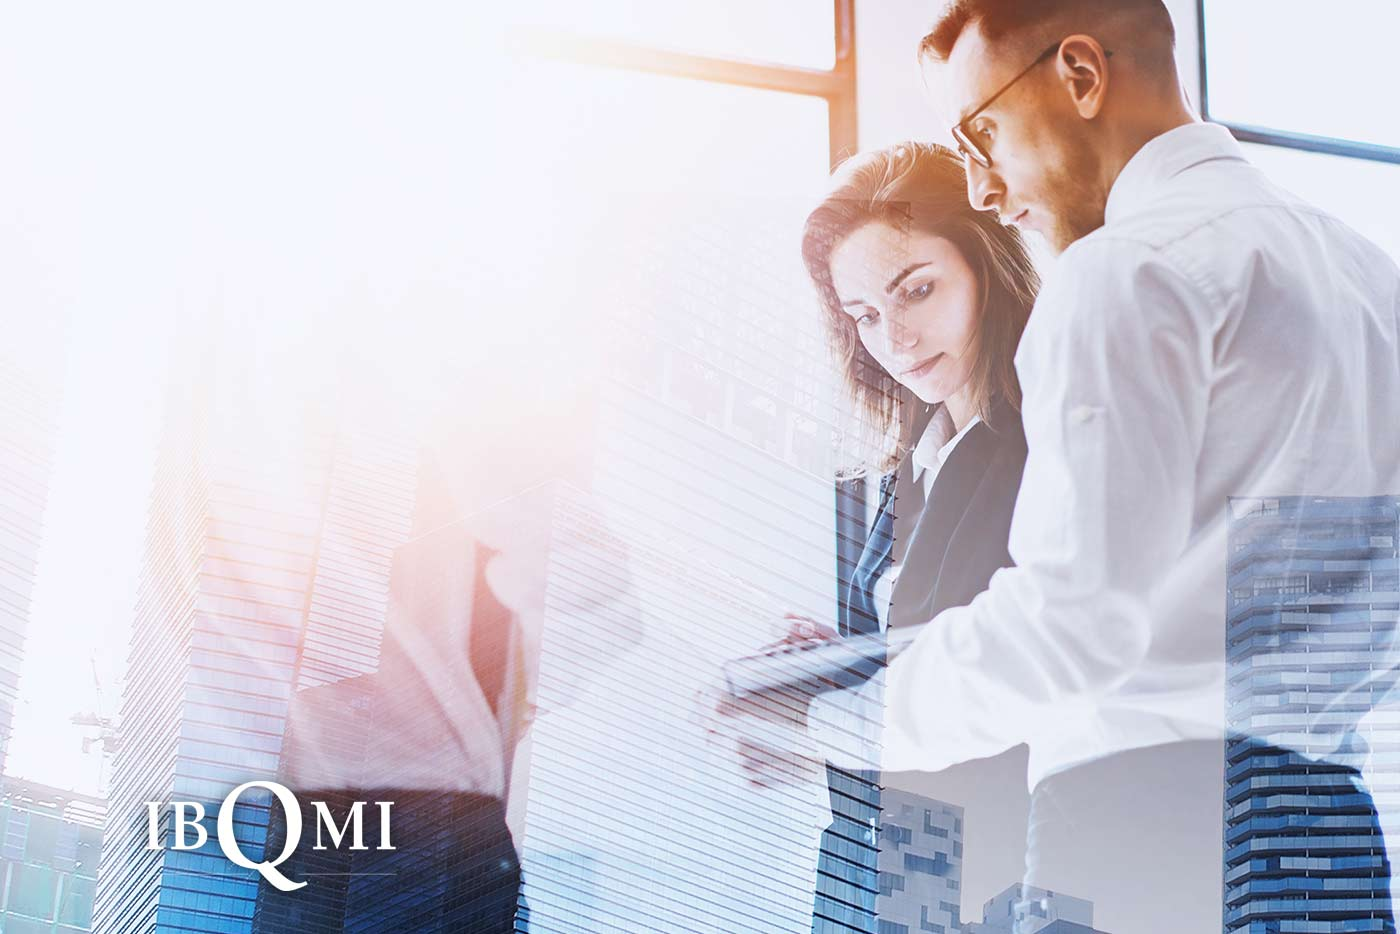 Top 5 benefits of ibqmi lean project management